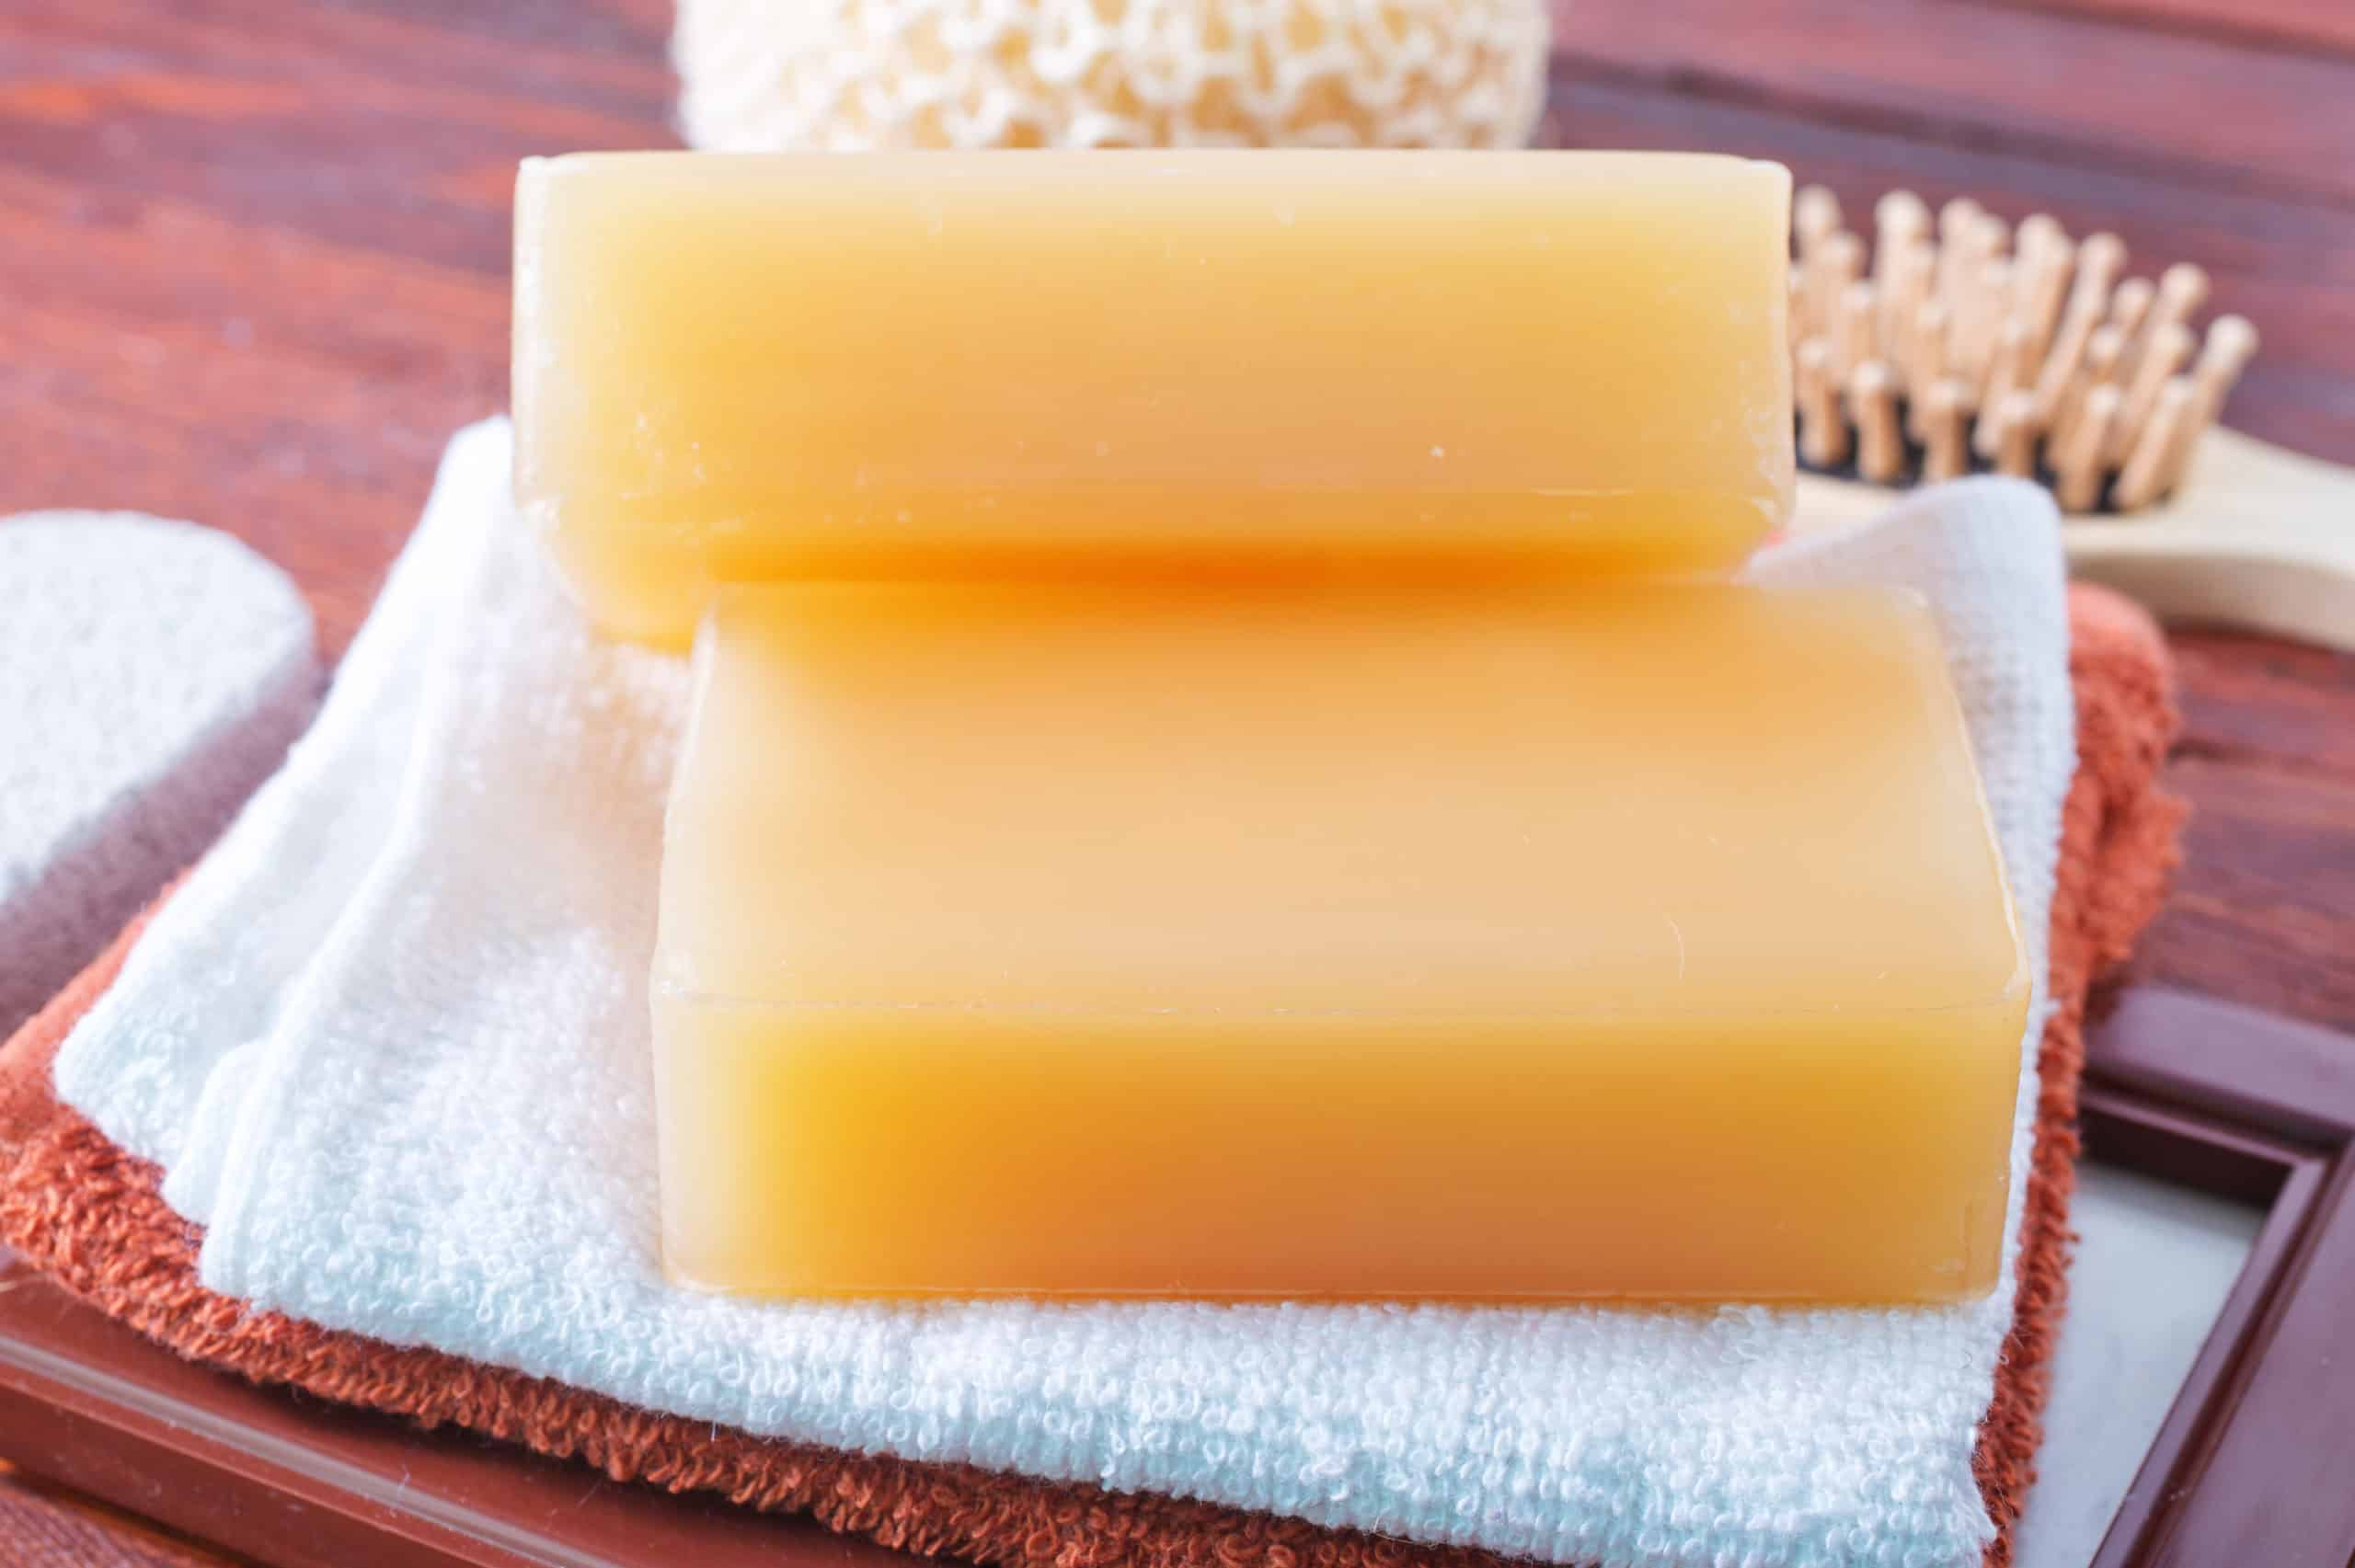 soap that was made at home with organic ingredients